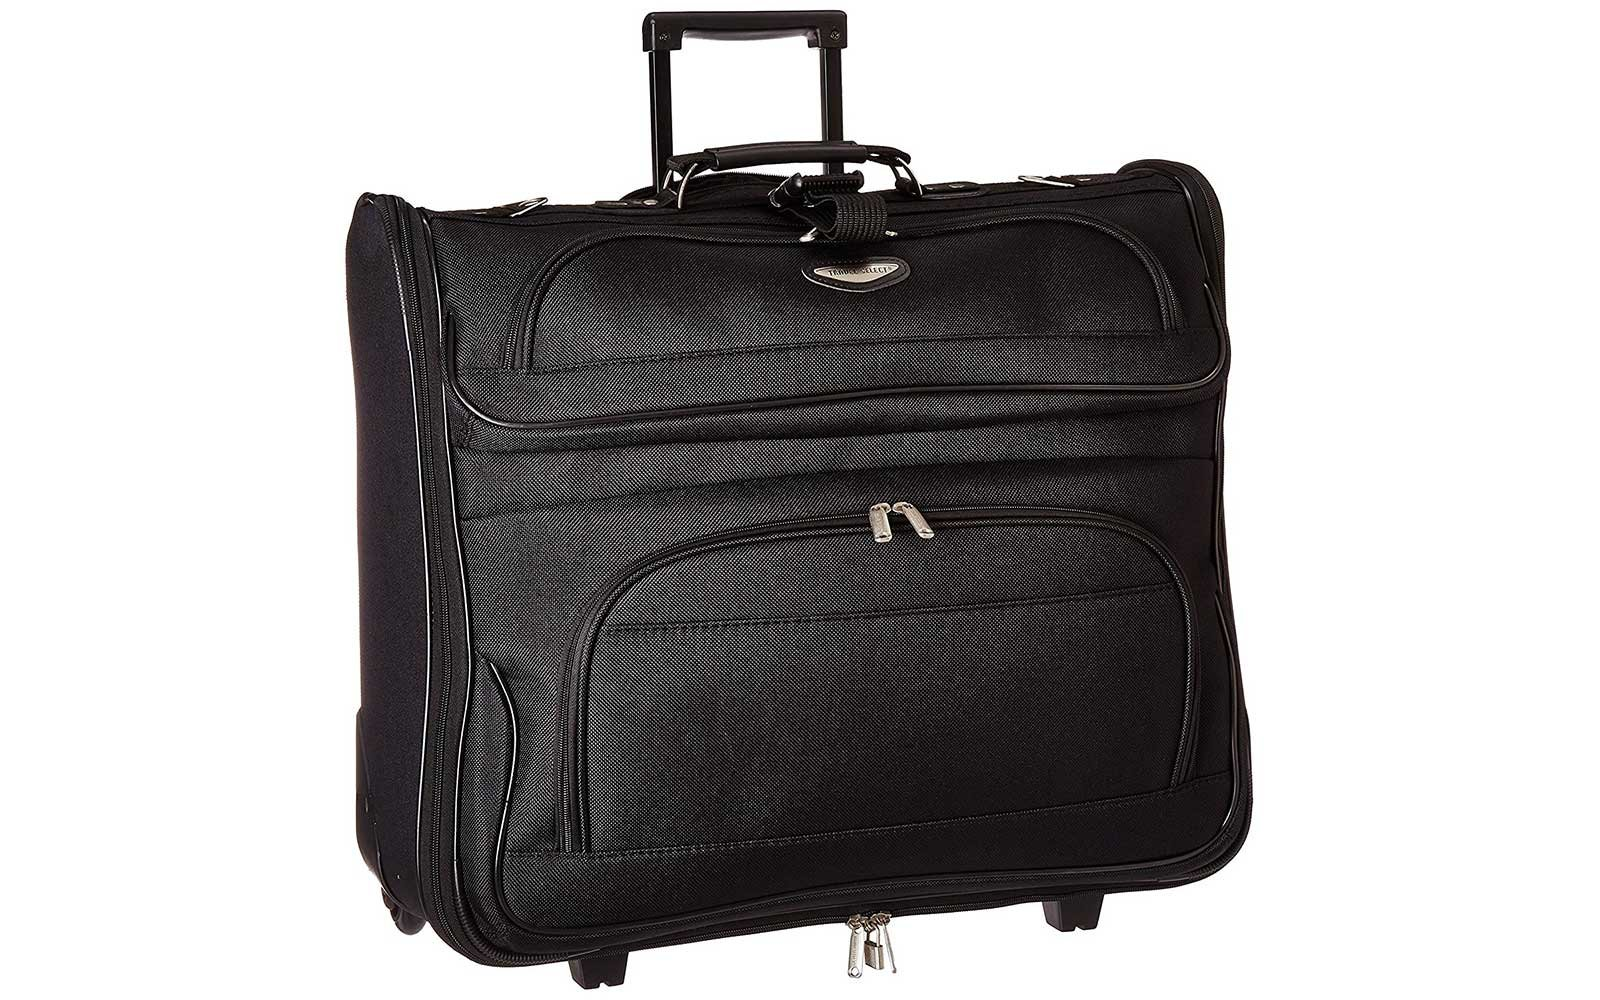 Rolling garment bag for travel